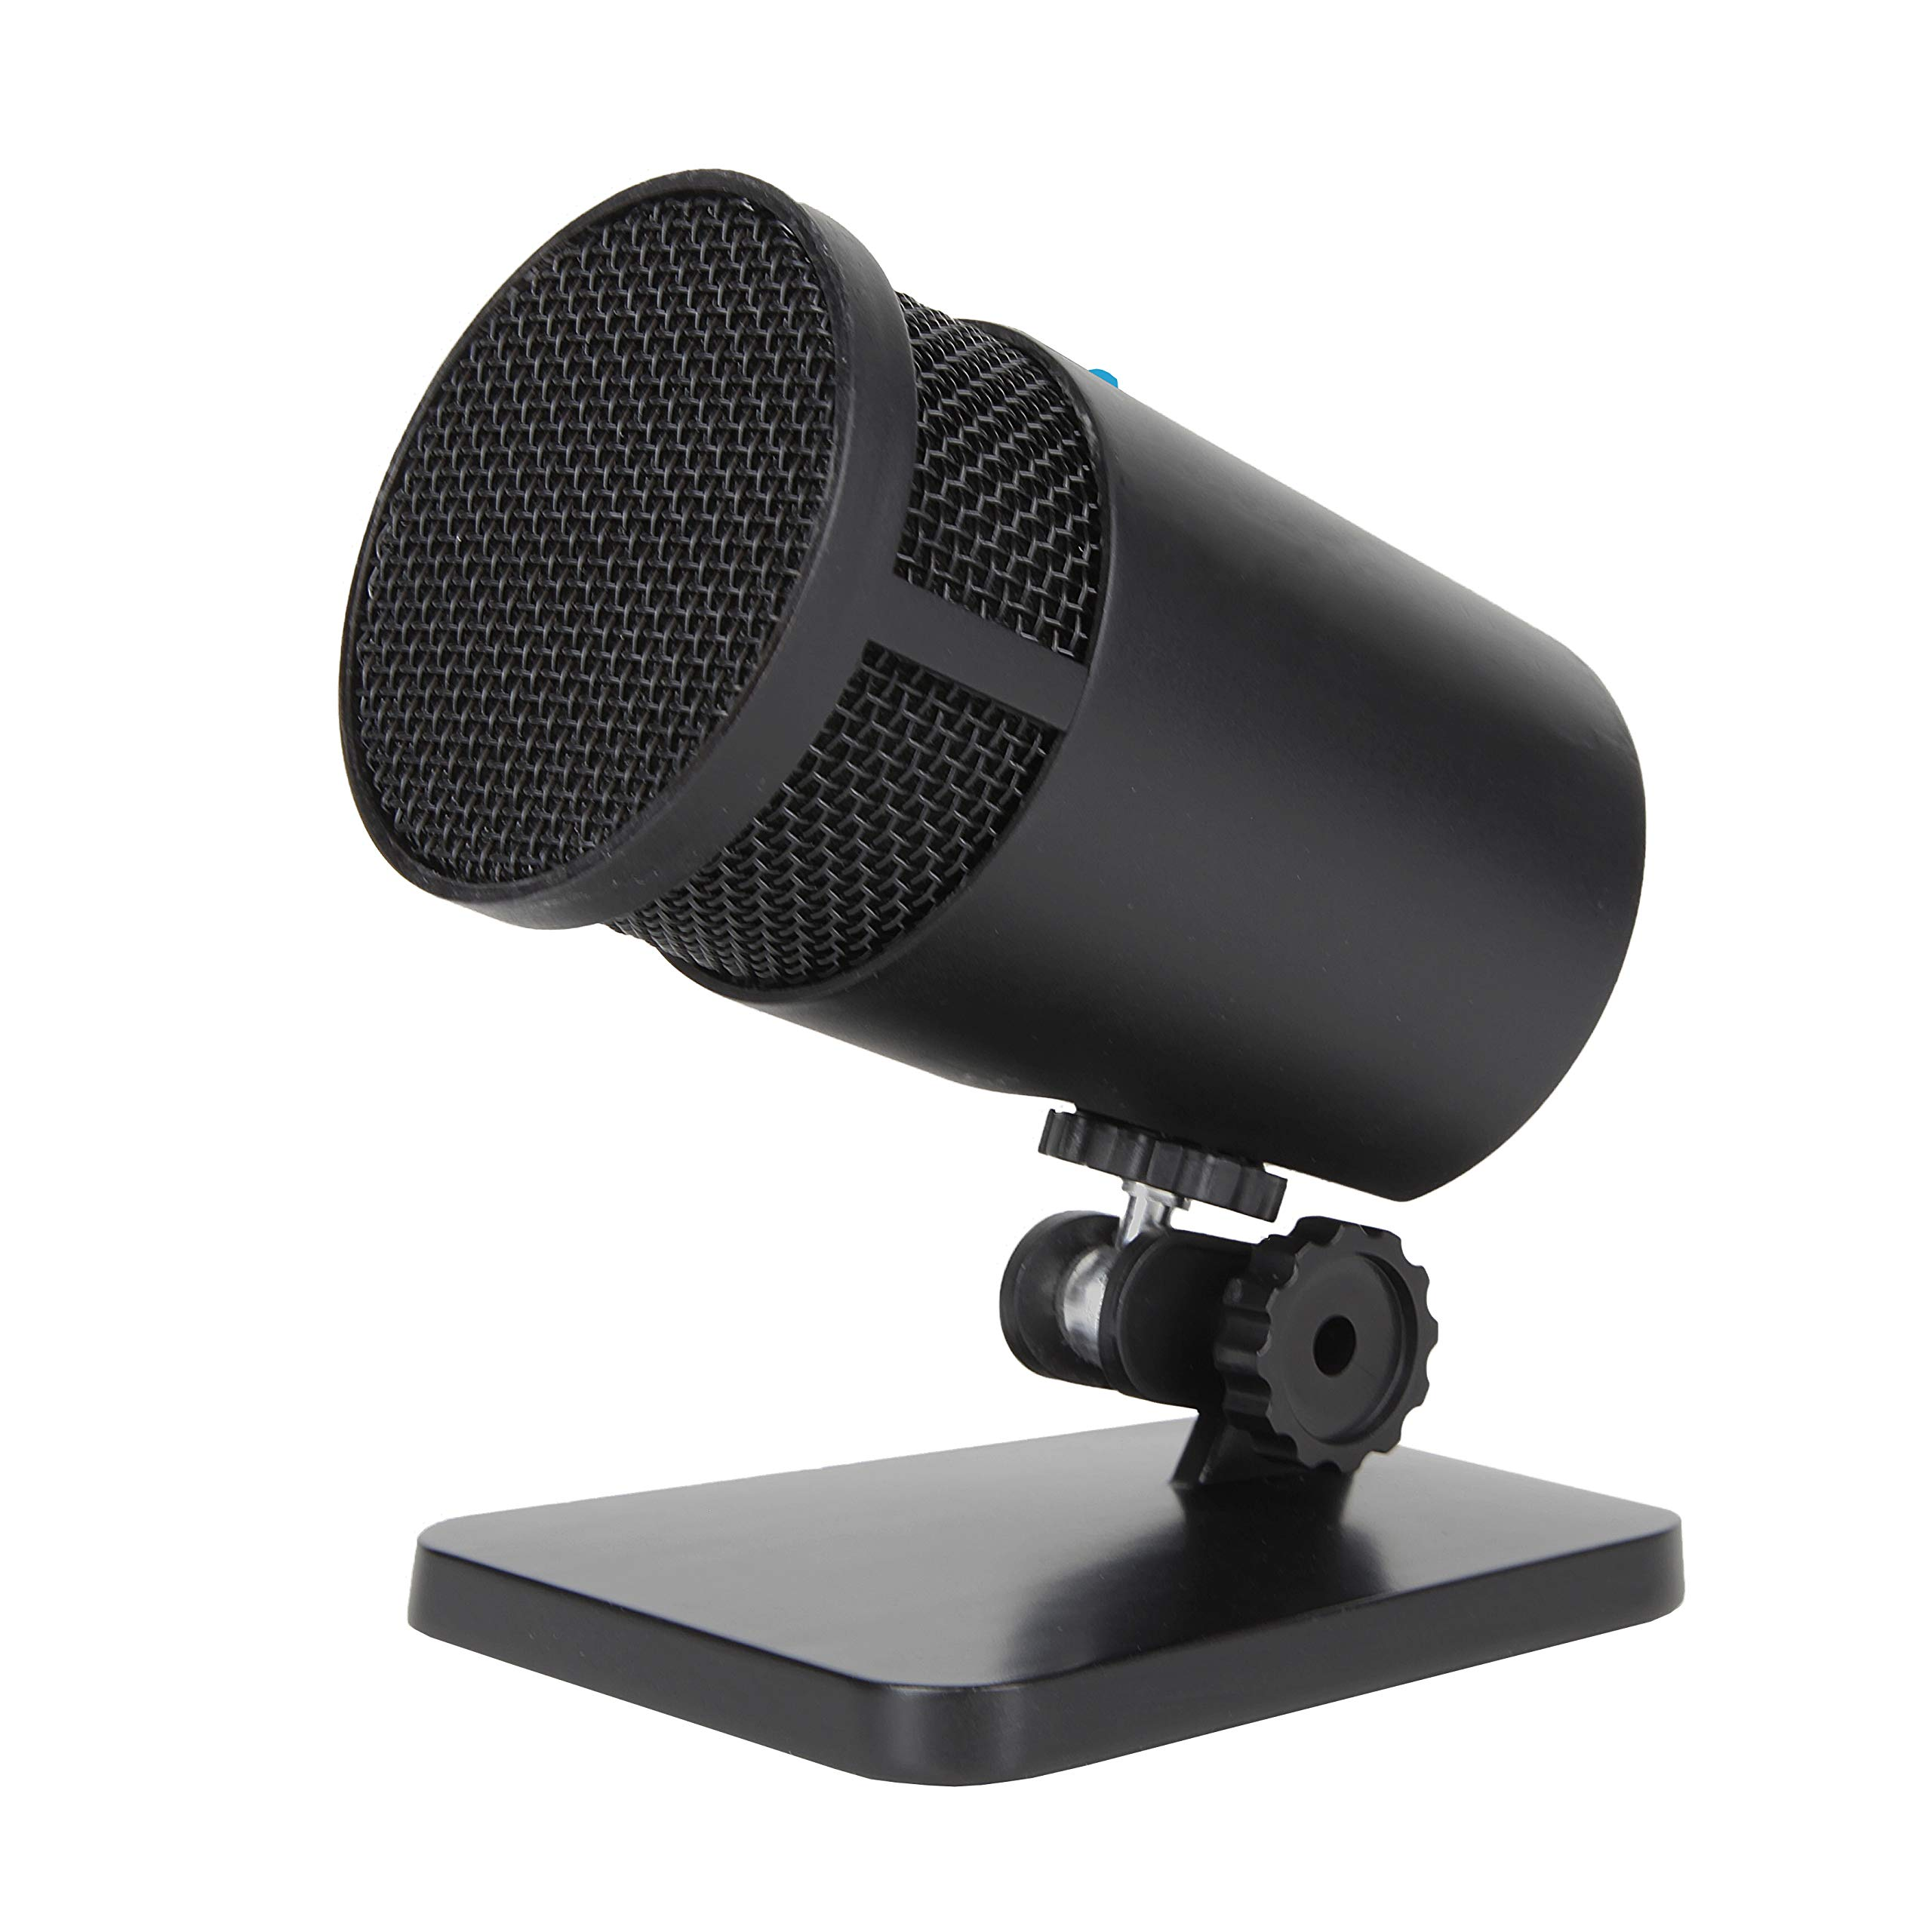 Cyber Acoustics USB Condenser Microphone for Podcasts, Gaming, Vocal, Music, Studio and Computer Recordings - Mic compatible with PC and Mac - Cardioid/Directional Recording Pattern (CVL-2001) by Cyber Acoustics